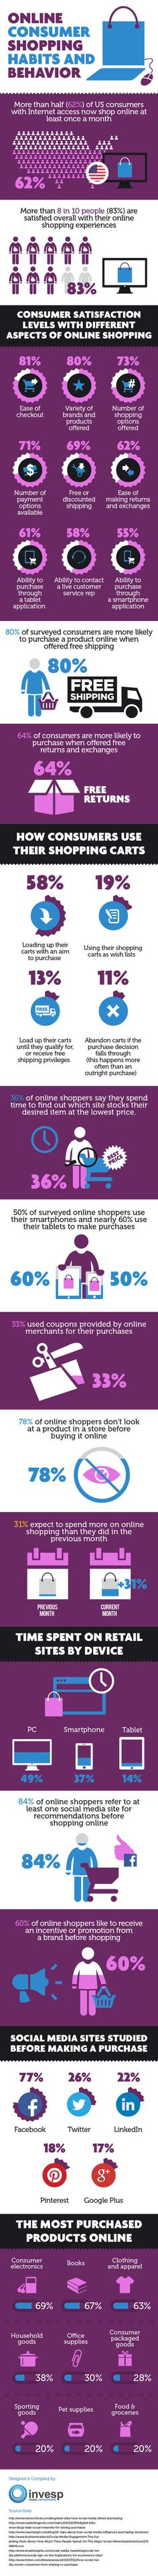 Online Consumer Shopping Habits and Behavior I Stacey Rudolph